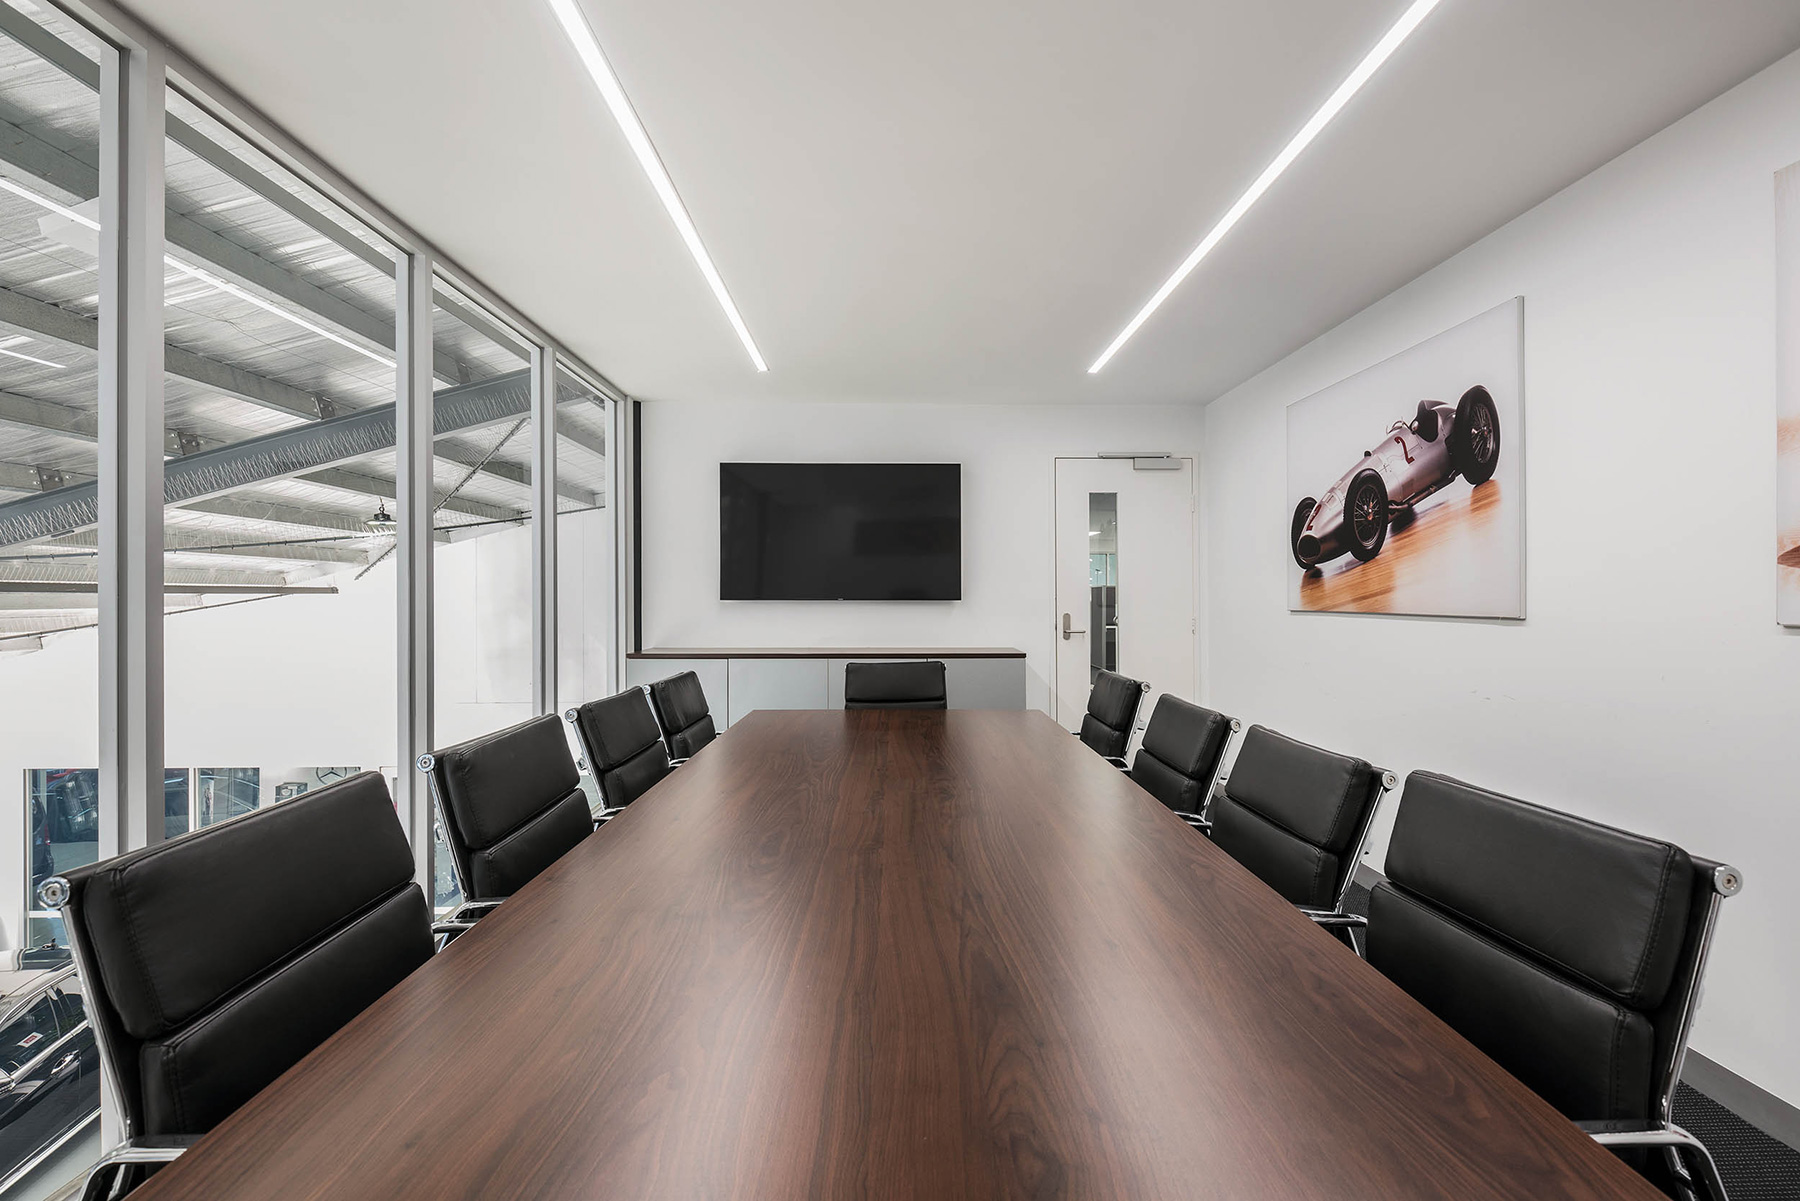 c. kairouz architects commercial architecture interior design for car dealership meeting room